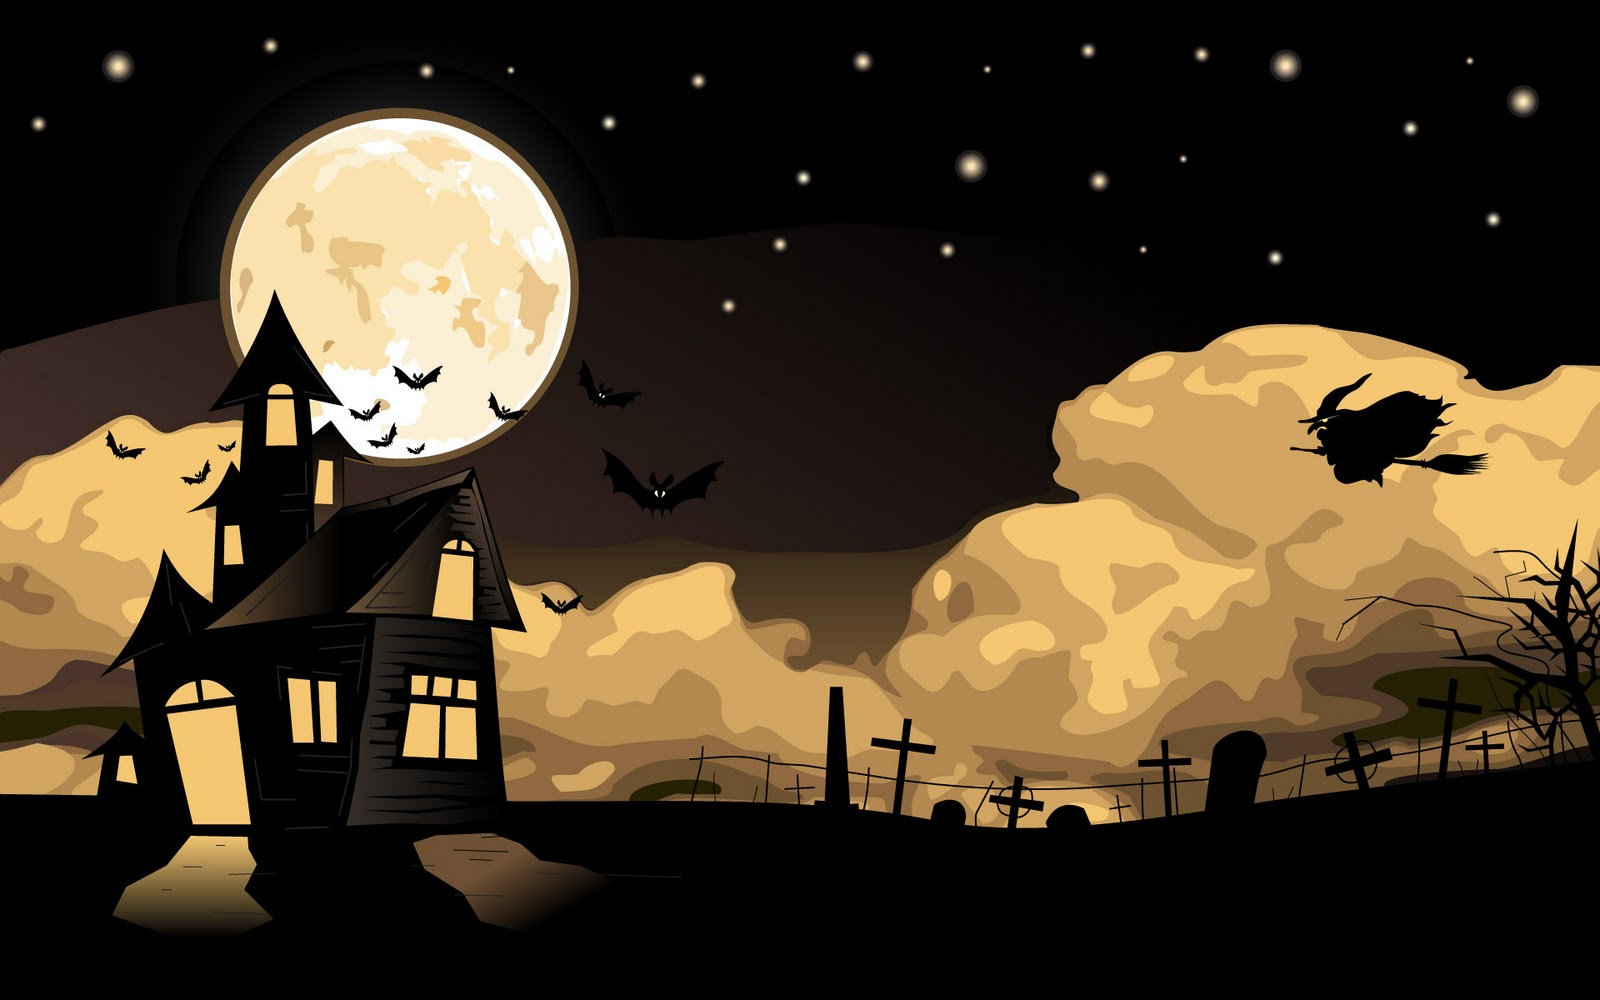 wallpaper freescary halloween screensavershalloween wallpaper 1600x1000